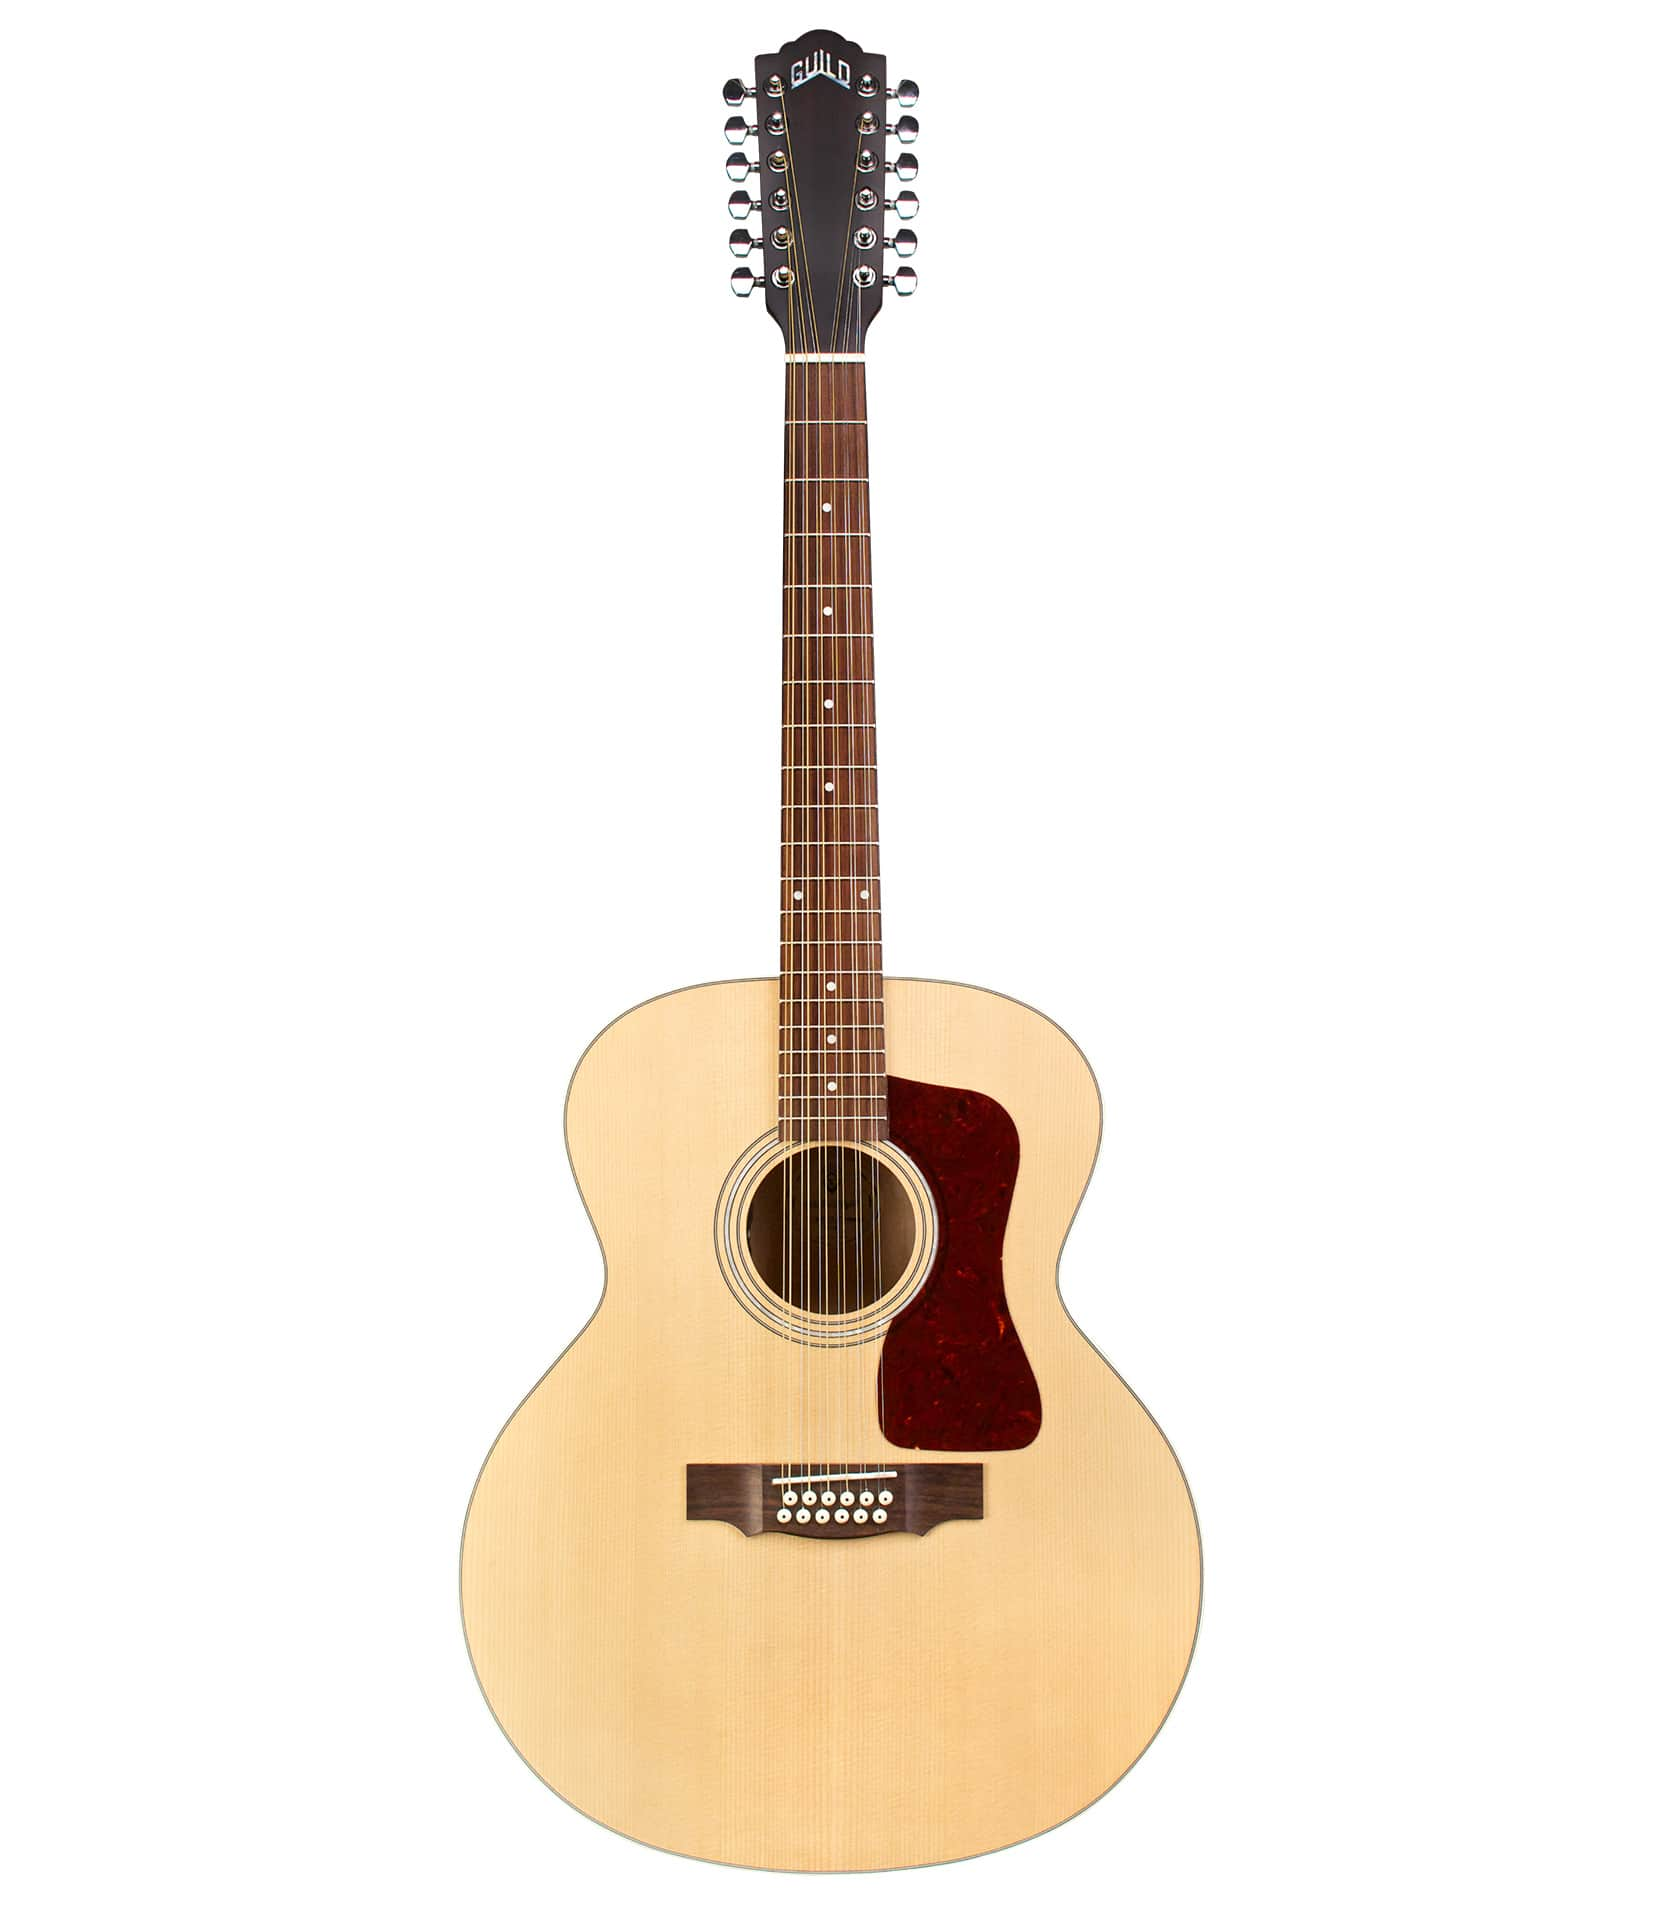 Guild - F2512E 12 String Jumbo Acoustic Electric Guitar